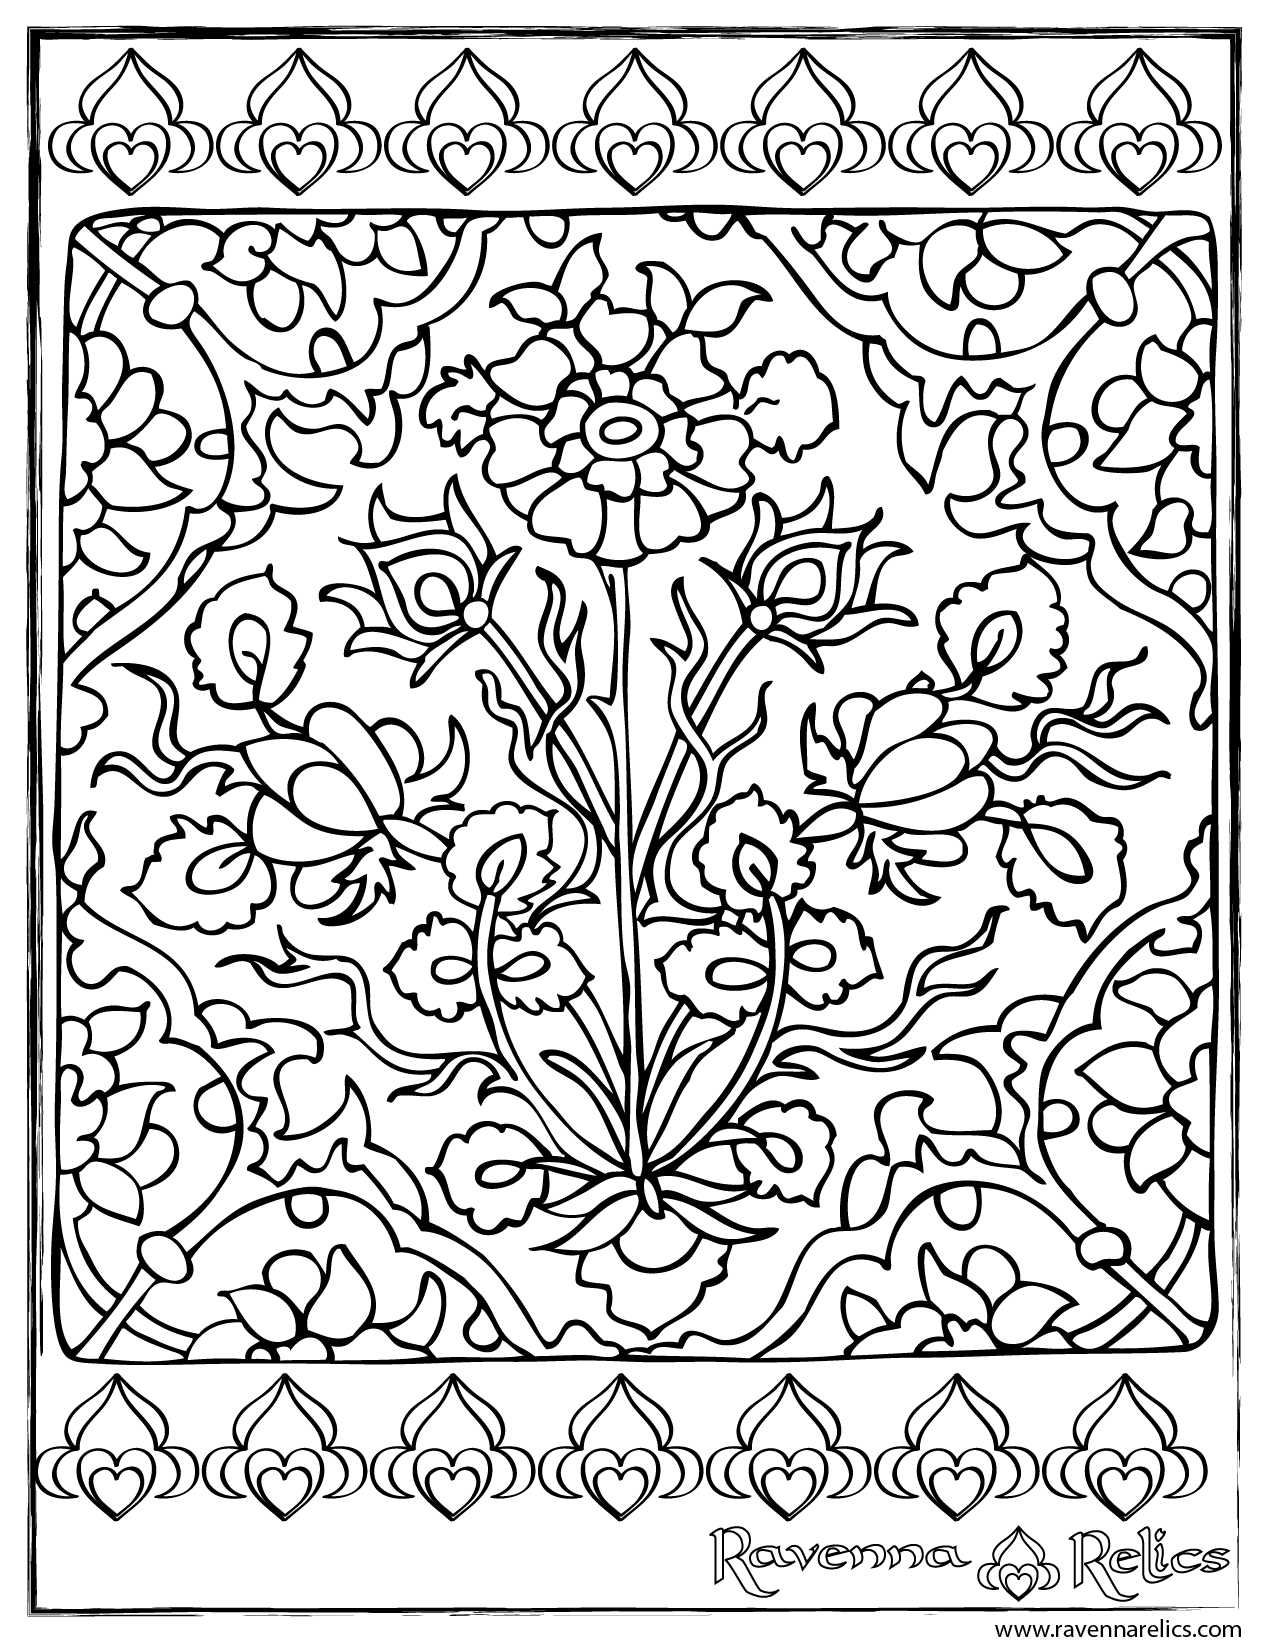 Tile drawing design. Isnik ottoman ceramic ravenna